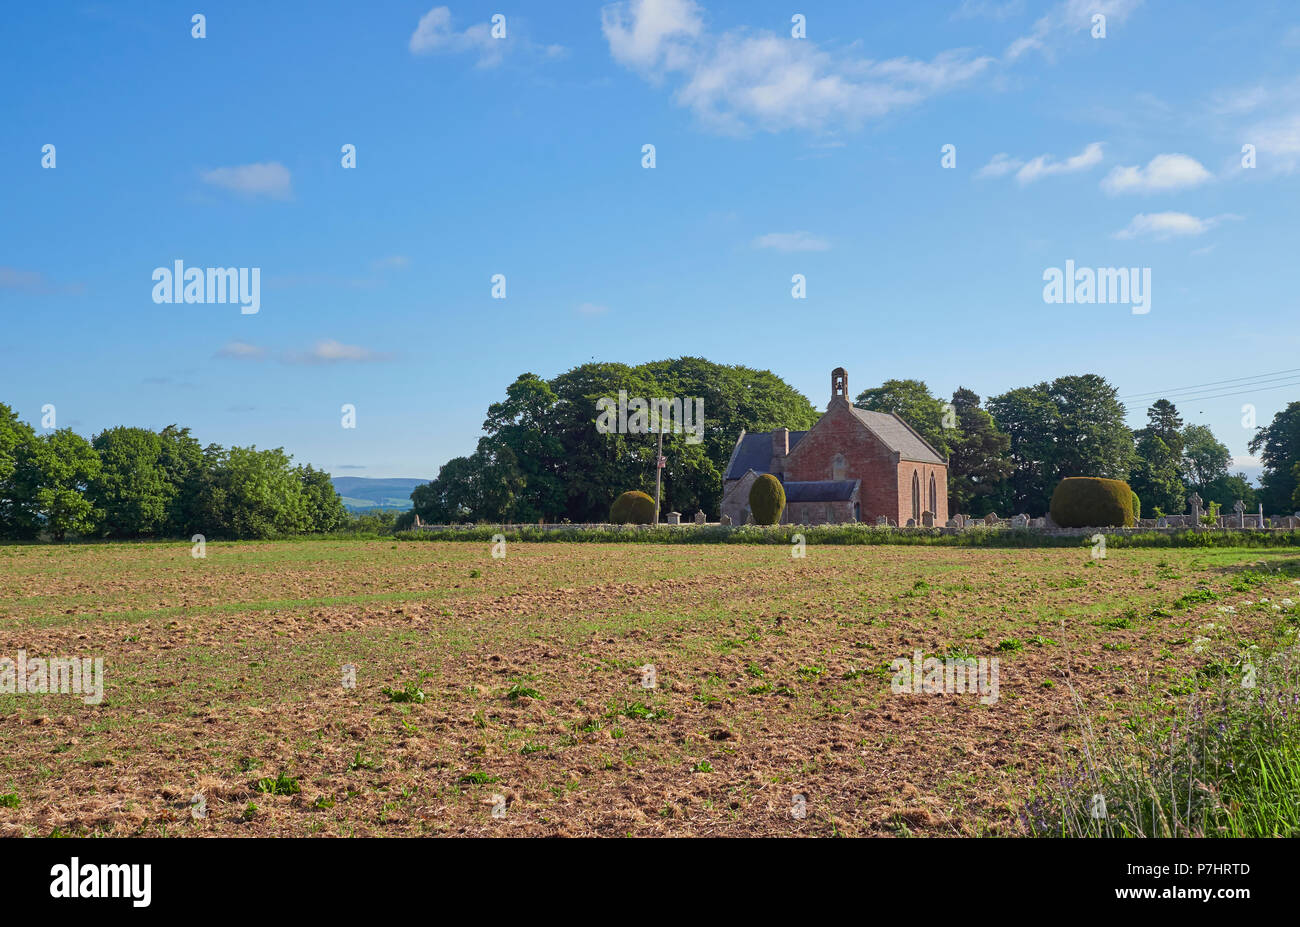 Stracathro Parish Church in the Mearns valley close to an Old Roman Camp amongst arable farmland with the Angus Glens in the distance, Angus, Scotland - Stock Image